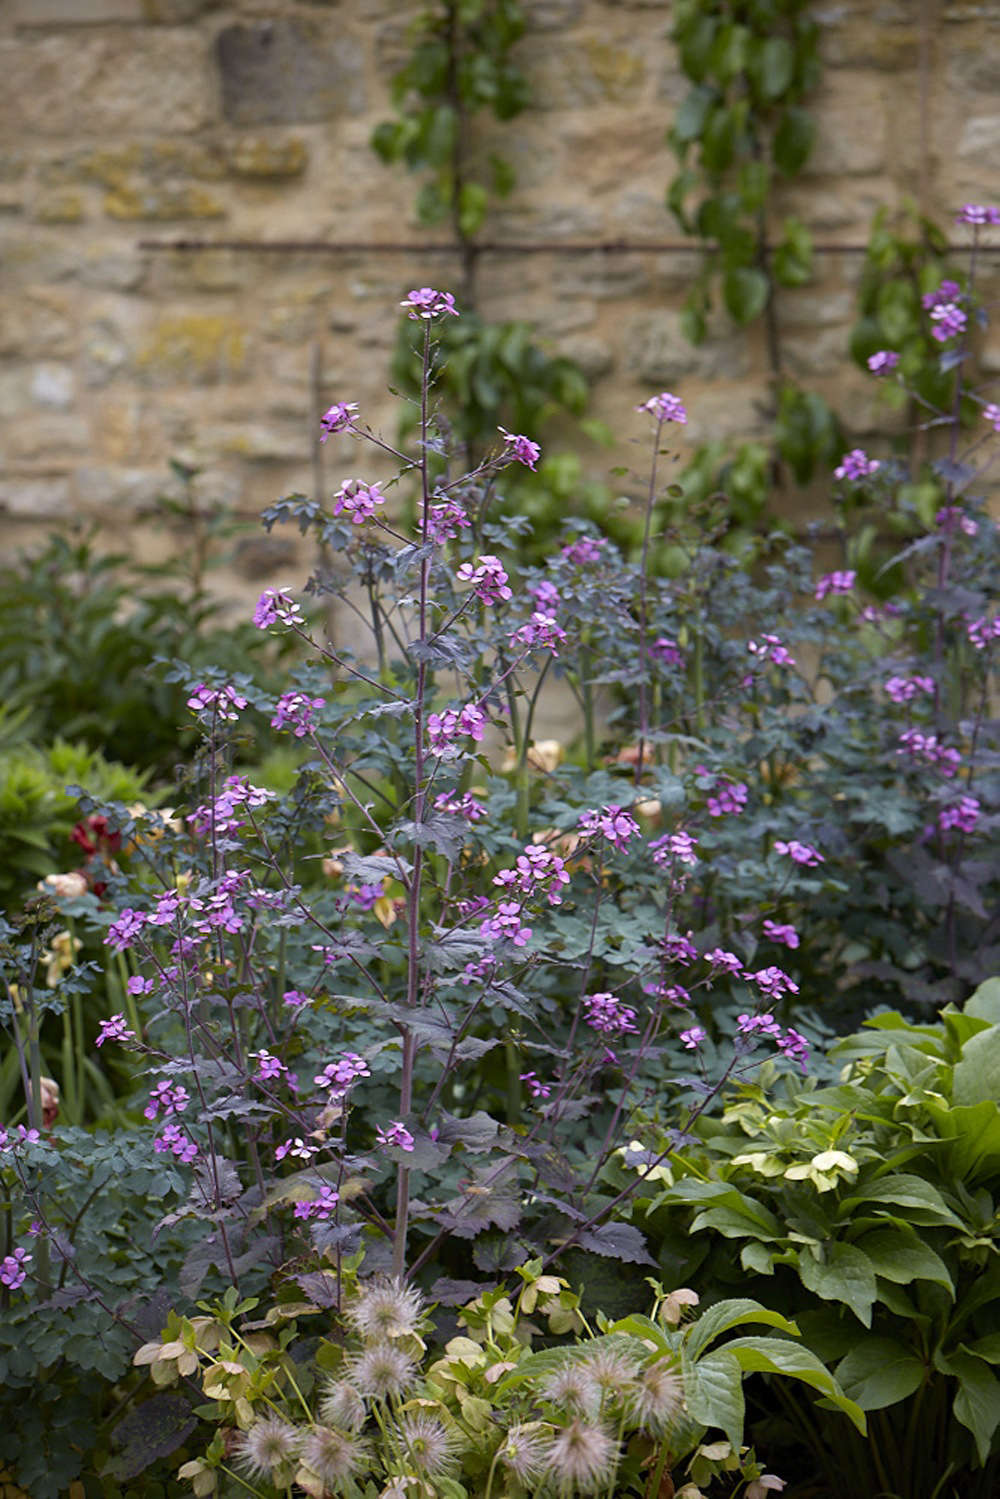 A row of magenta lunaria, between a row of hellebore and a row of Thalictrum 'Elin'. In the foreground, seed heads of pulsatilla are dotted through the gravel.